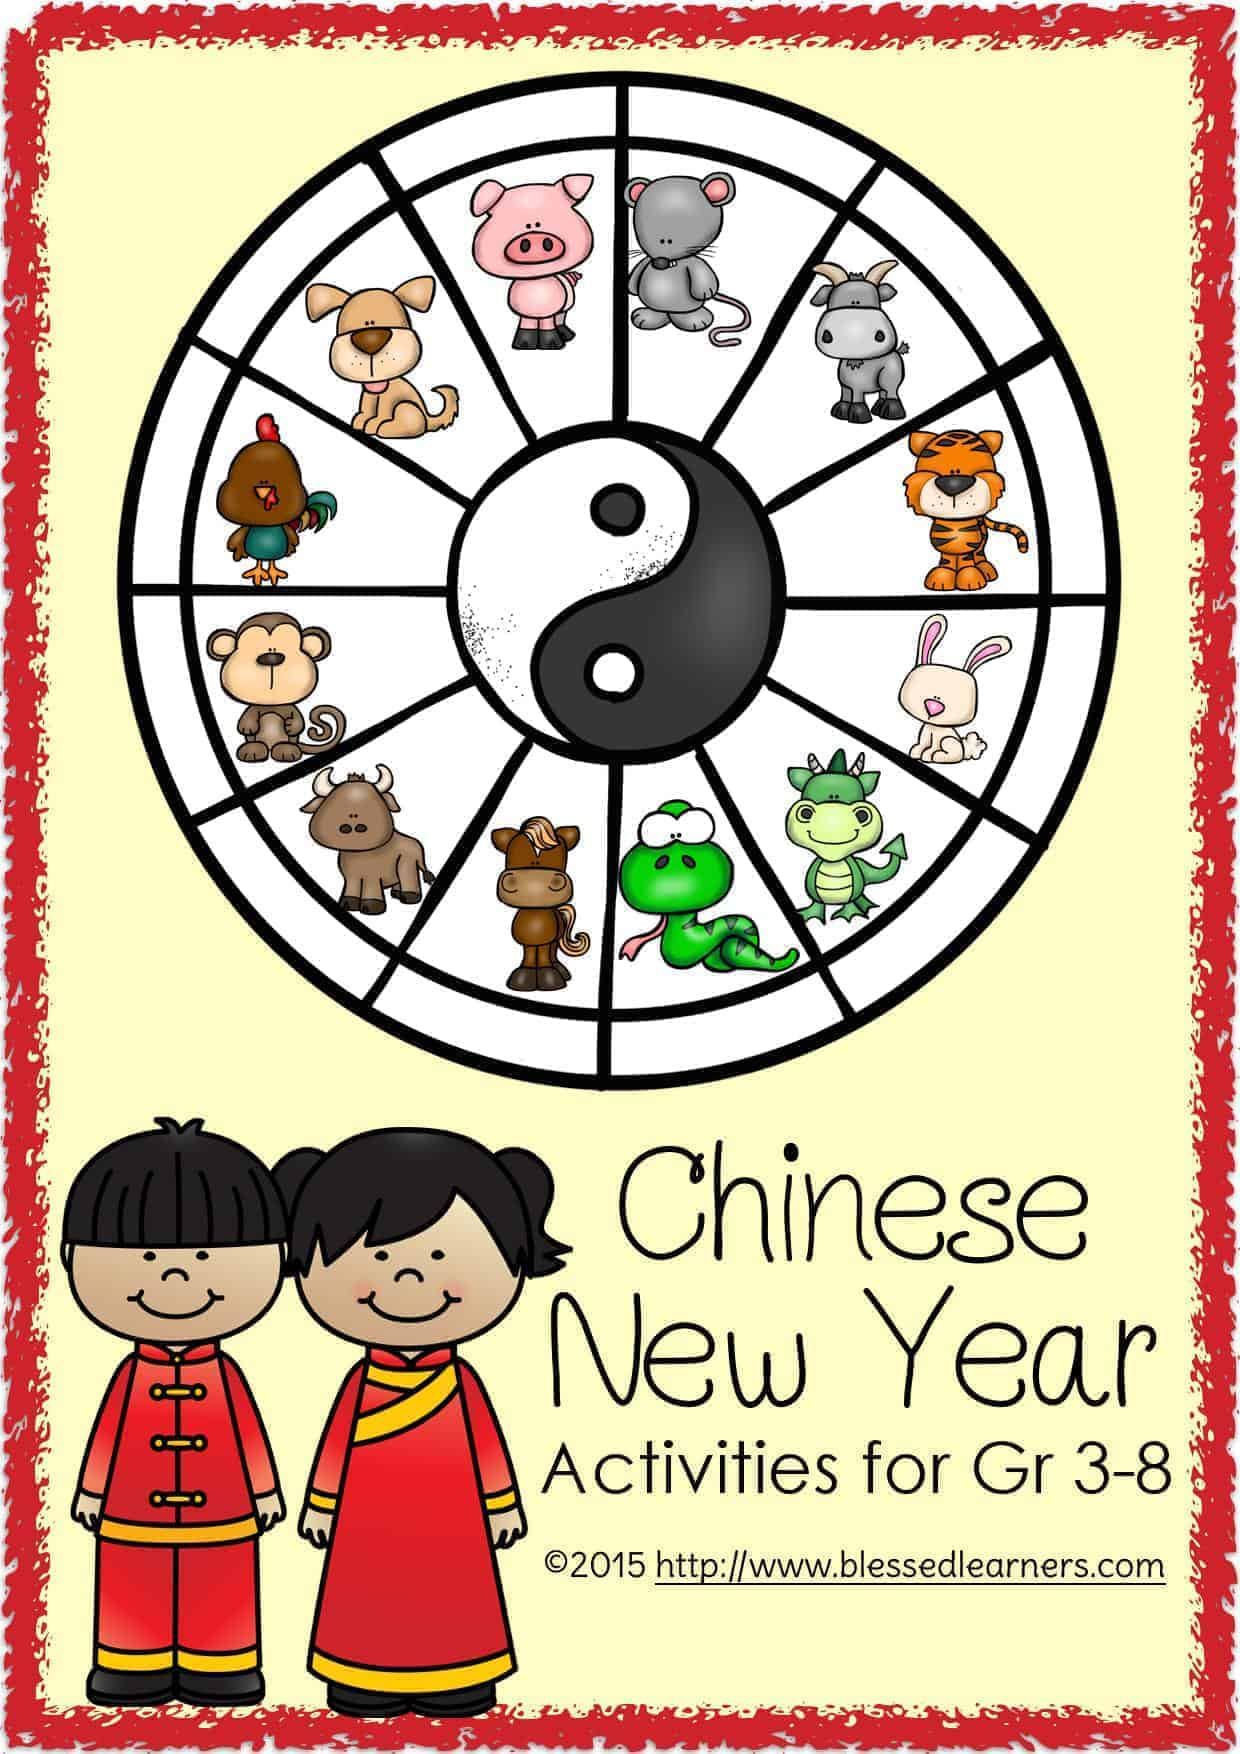 chinese new year unit activities for gr 3 8 blessed learners. Black Bedroom Furniture Sets. Home Design Ideas